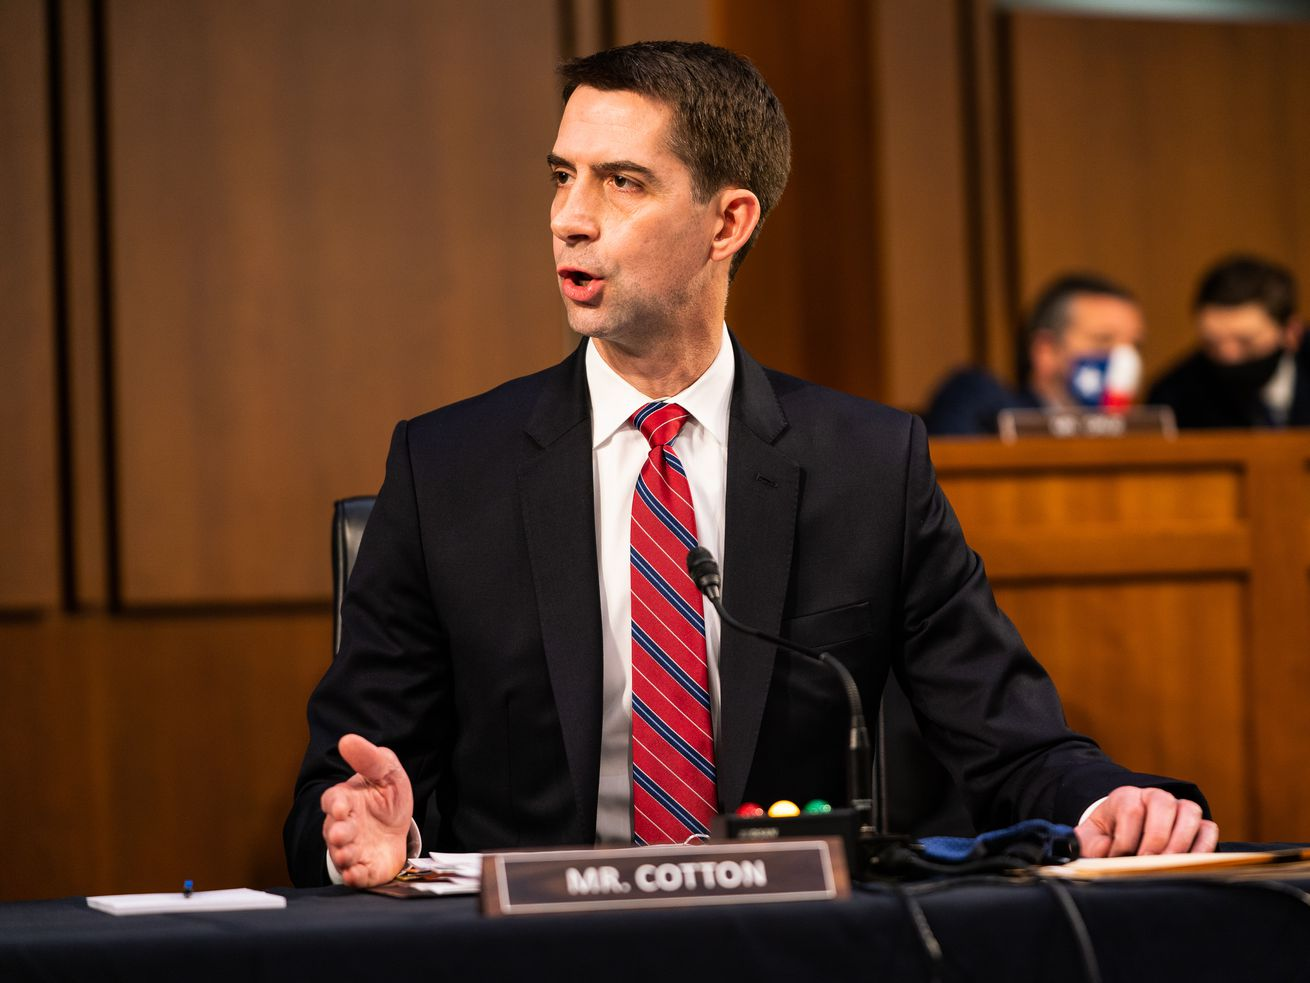 Tom Cotton et Mitt Romney proposent un salaire minimum de 10 $